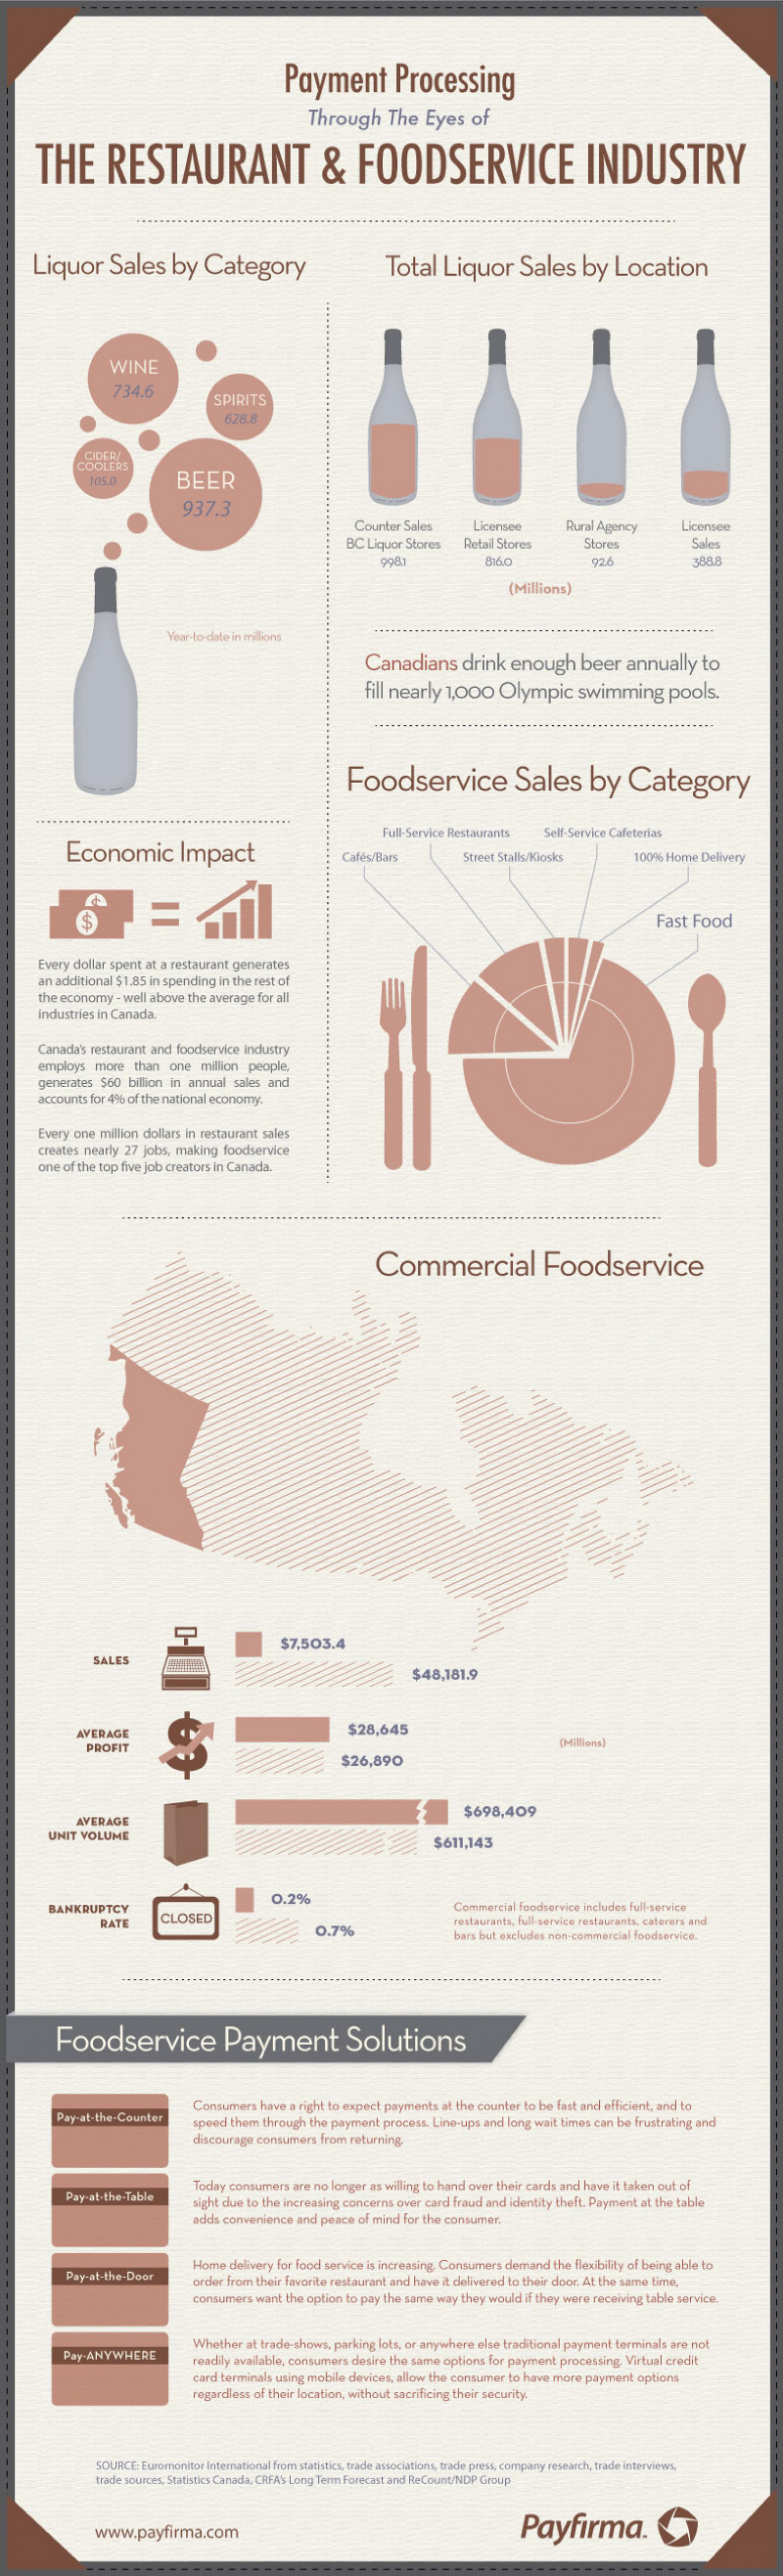 Food Service Industry Facts